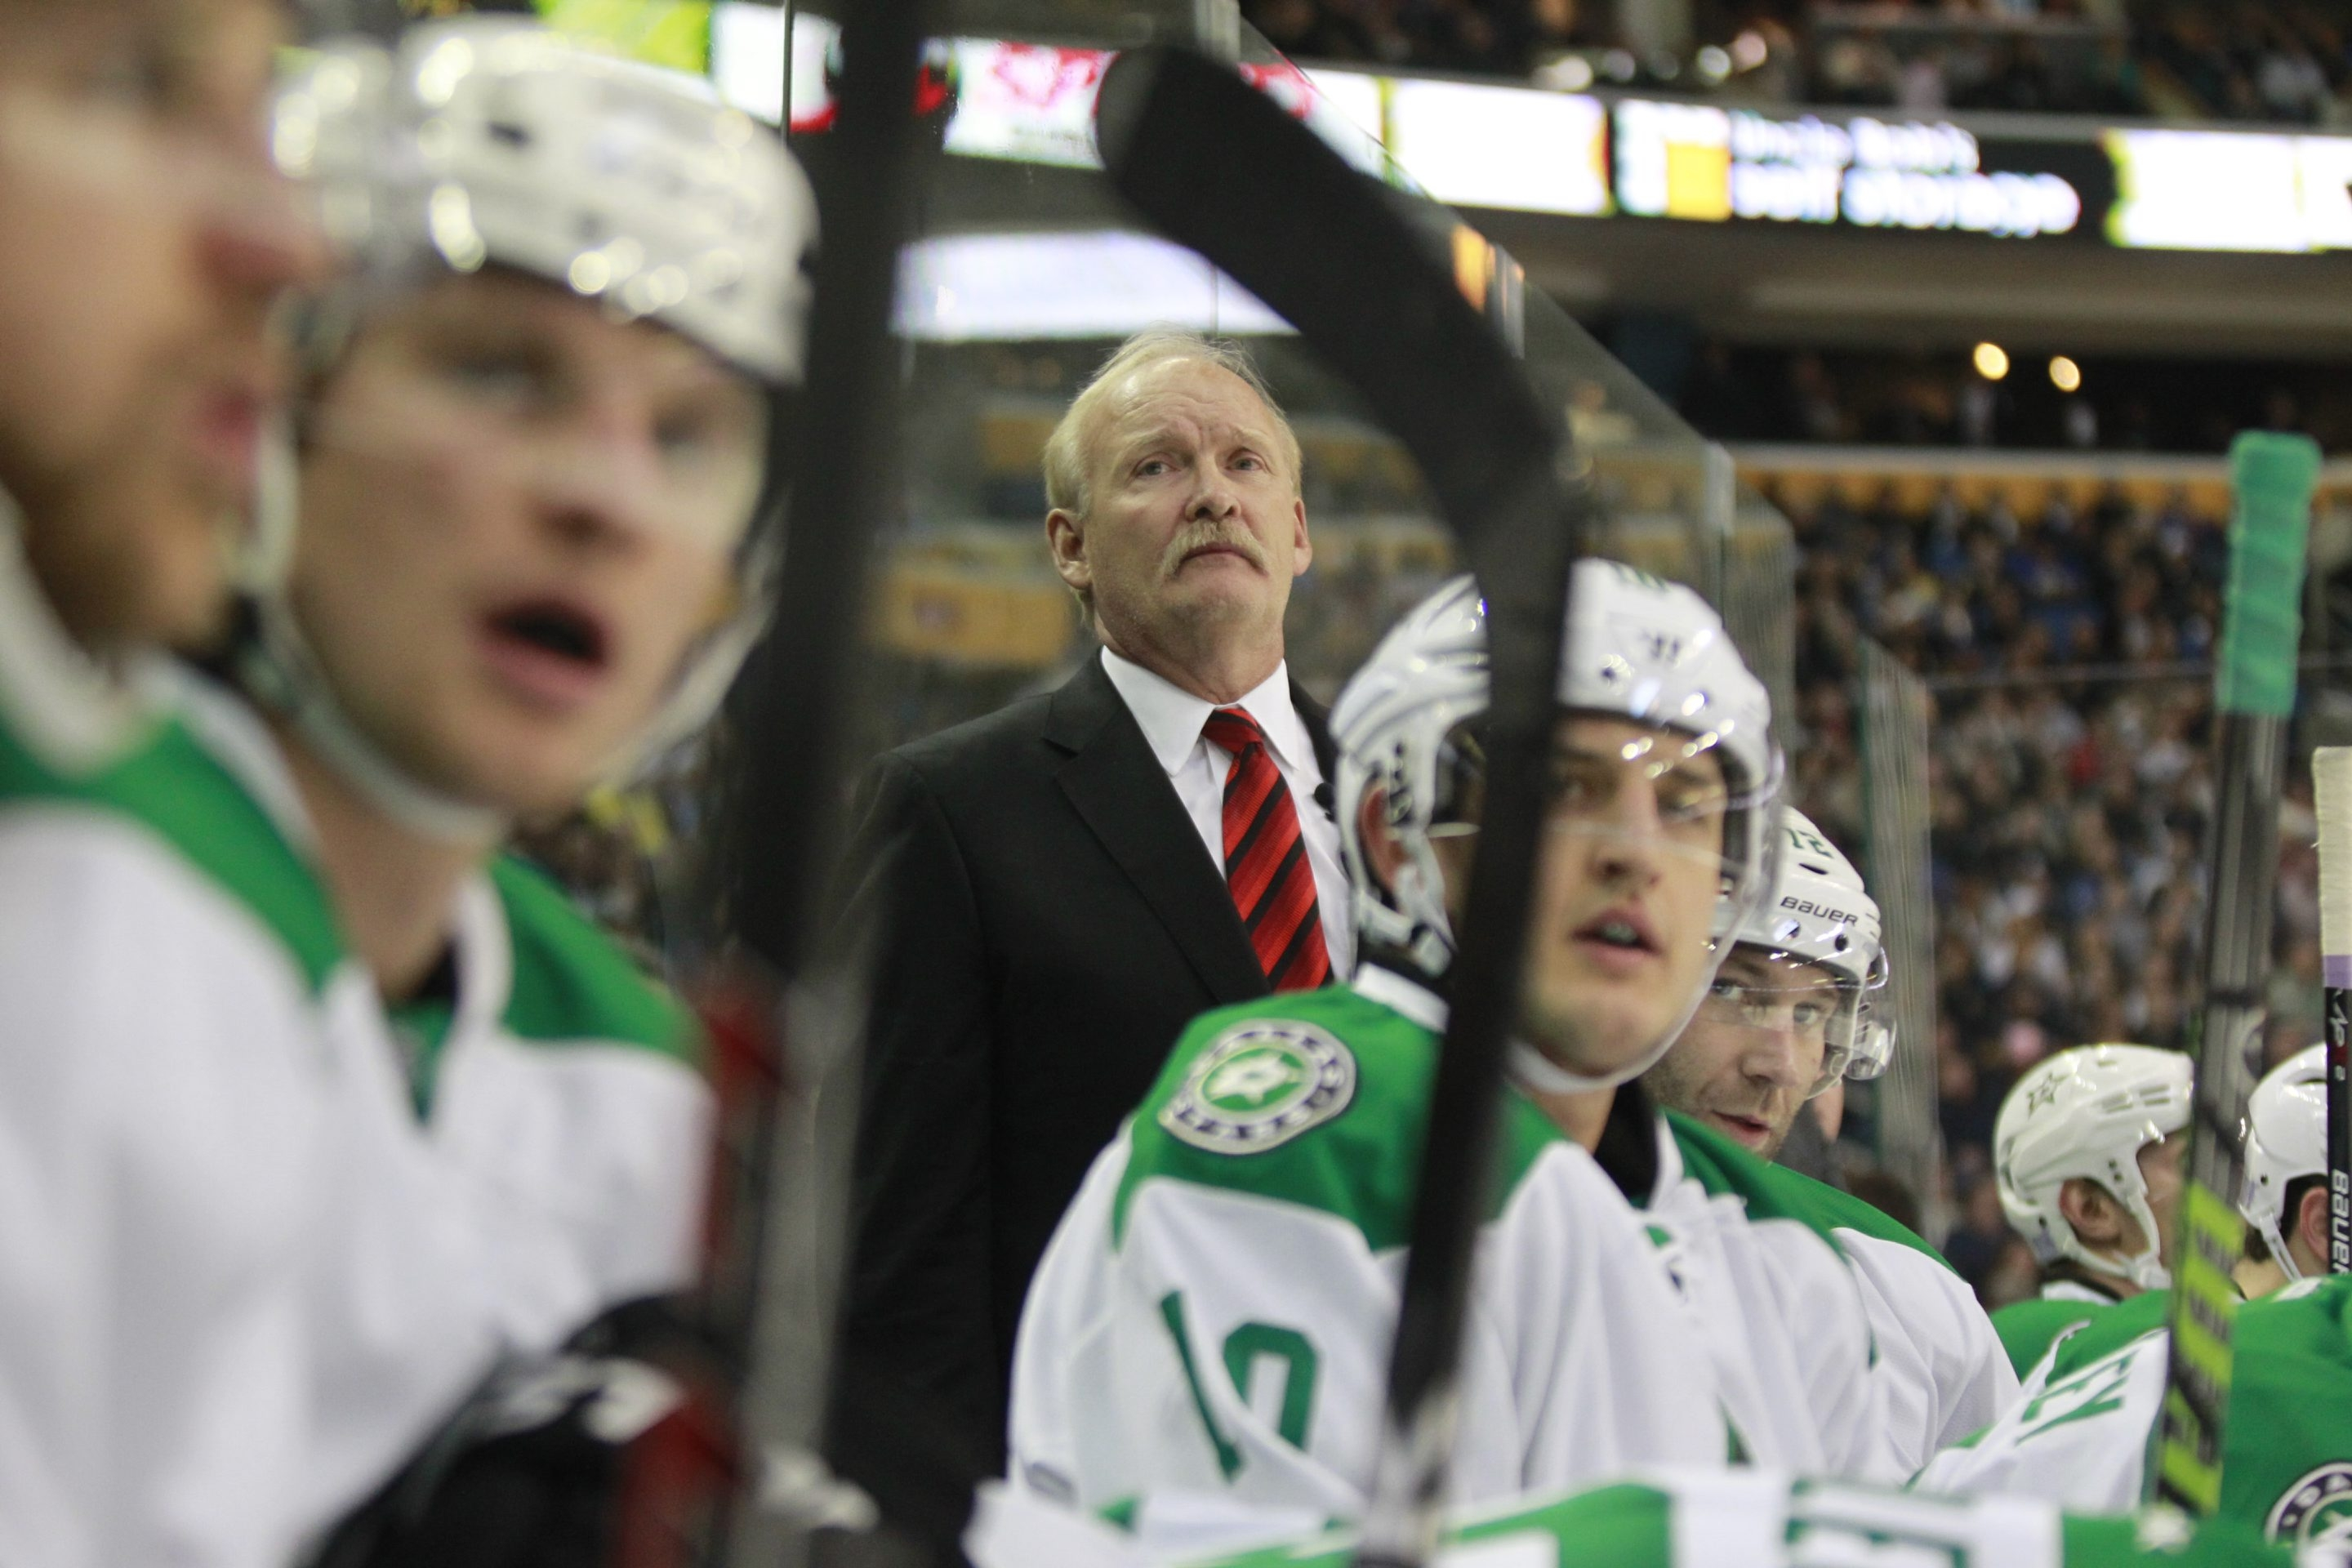 Lindy Ruff, now coach of the Dallas Stars after 26 years as a player and coach for the Sabres, directs his new team during Monday night's game in First Niagara Center that Dallas won, 4-3. Ruff received a video tribute and a standing ovation during the game.